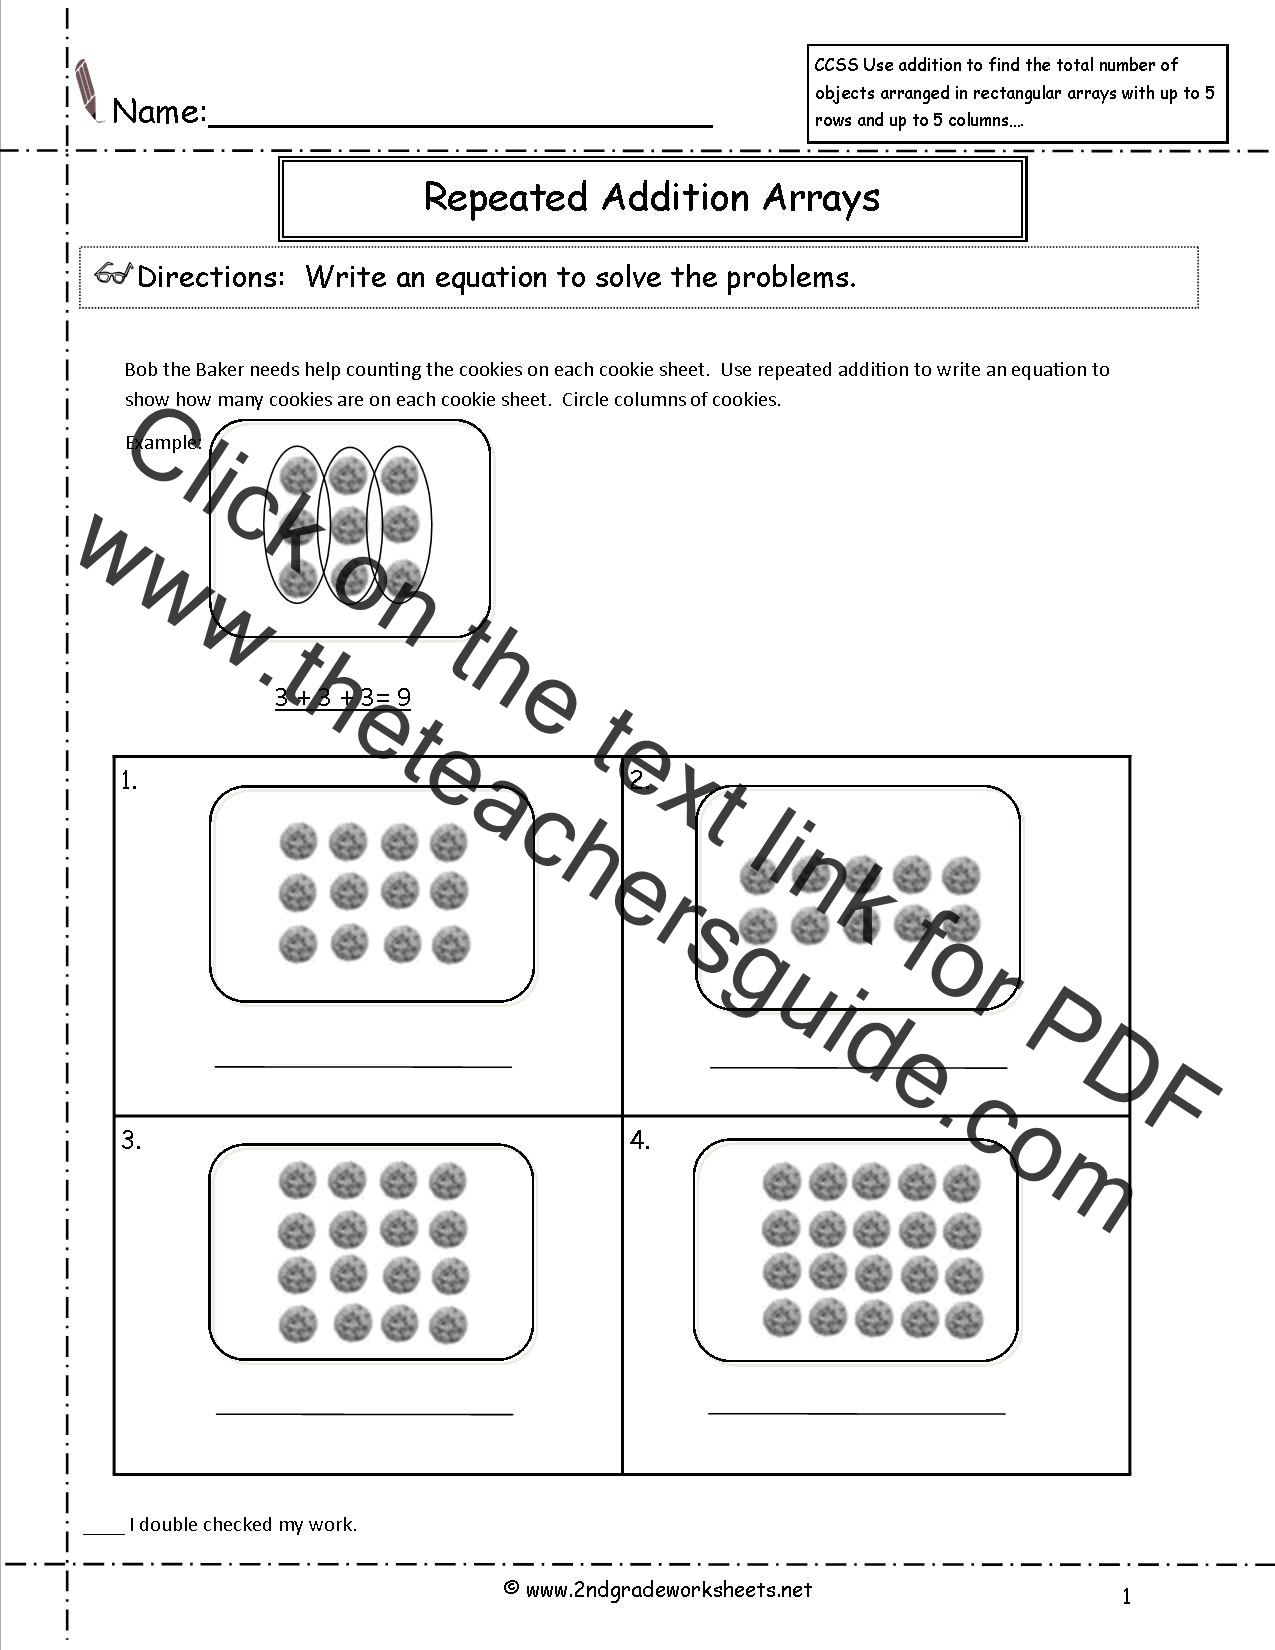 Printables Equal Groups Multiplication Worksheets ccss 2 oa 4 worksheets repeated addition arrays worksheets